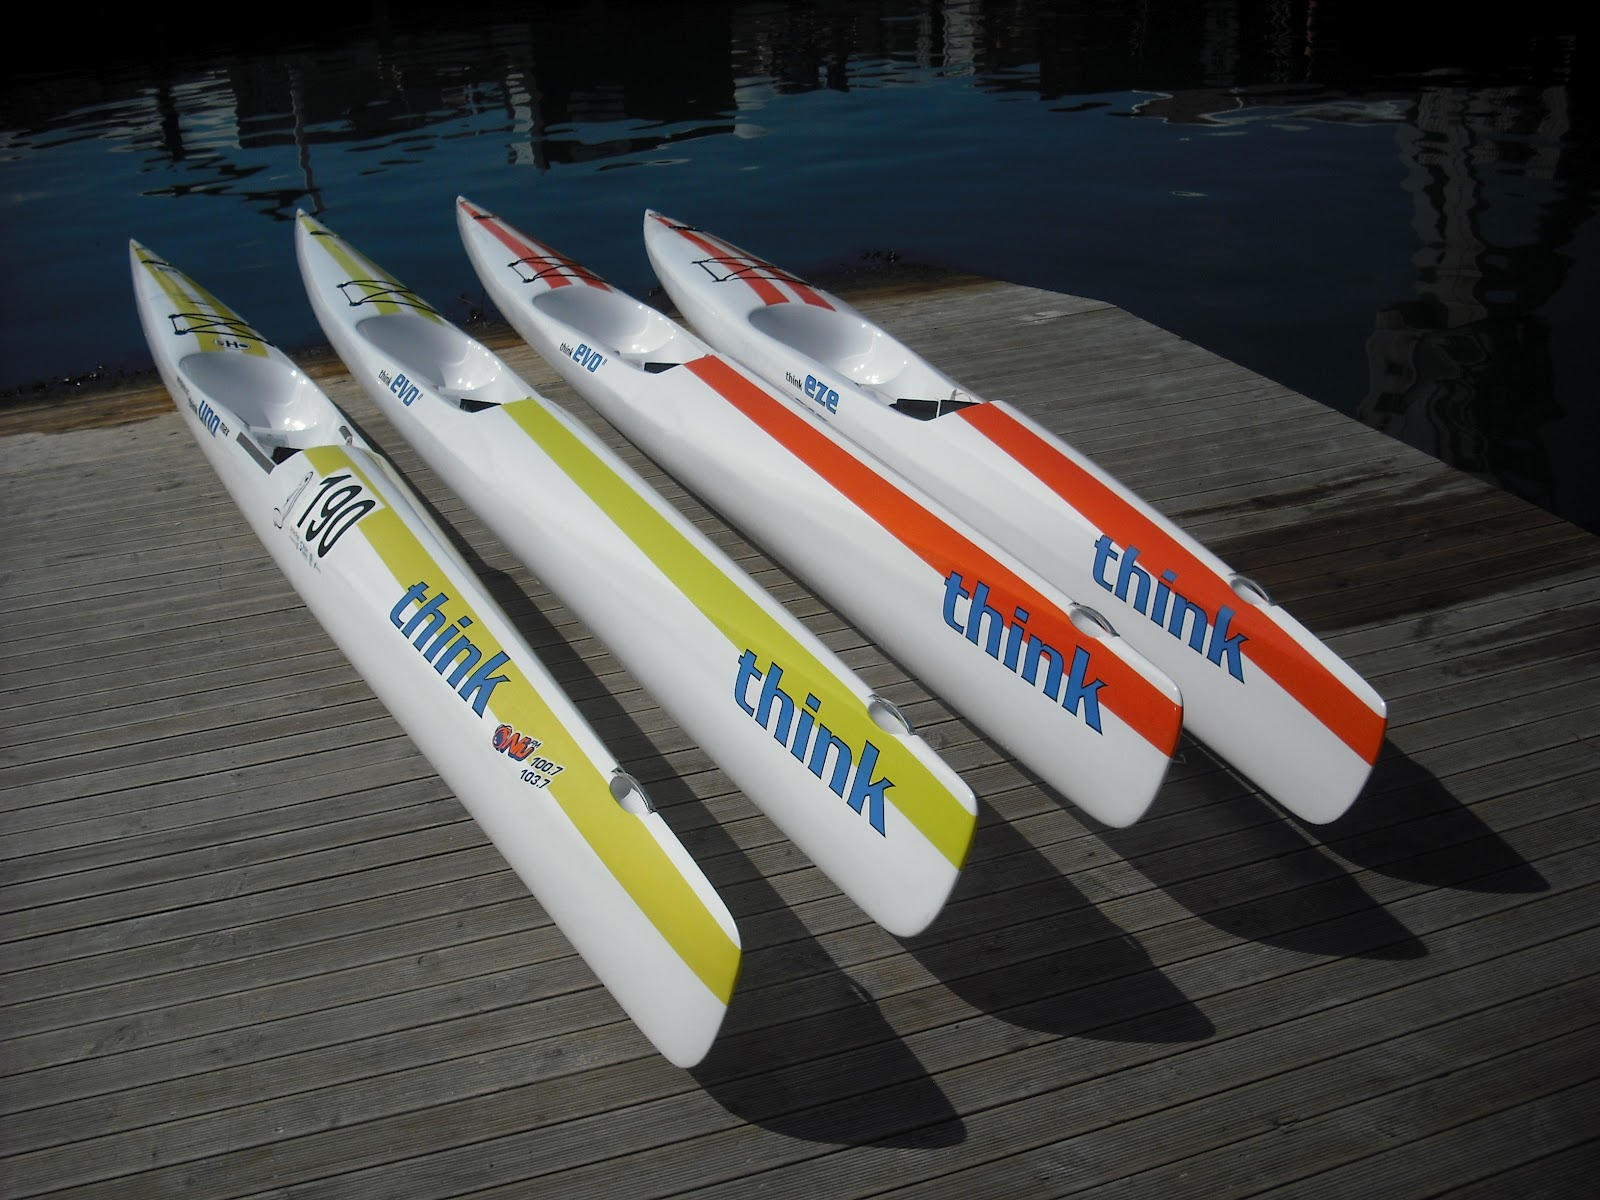 Think Surf Skis At Record Low Prices